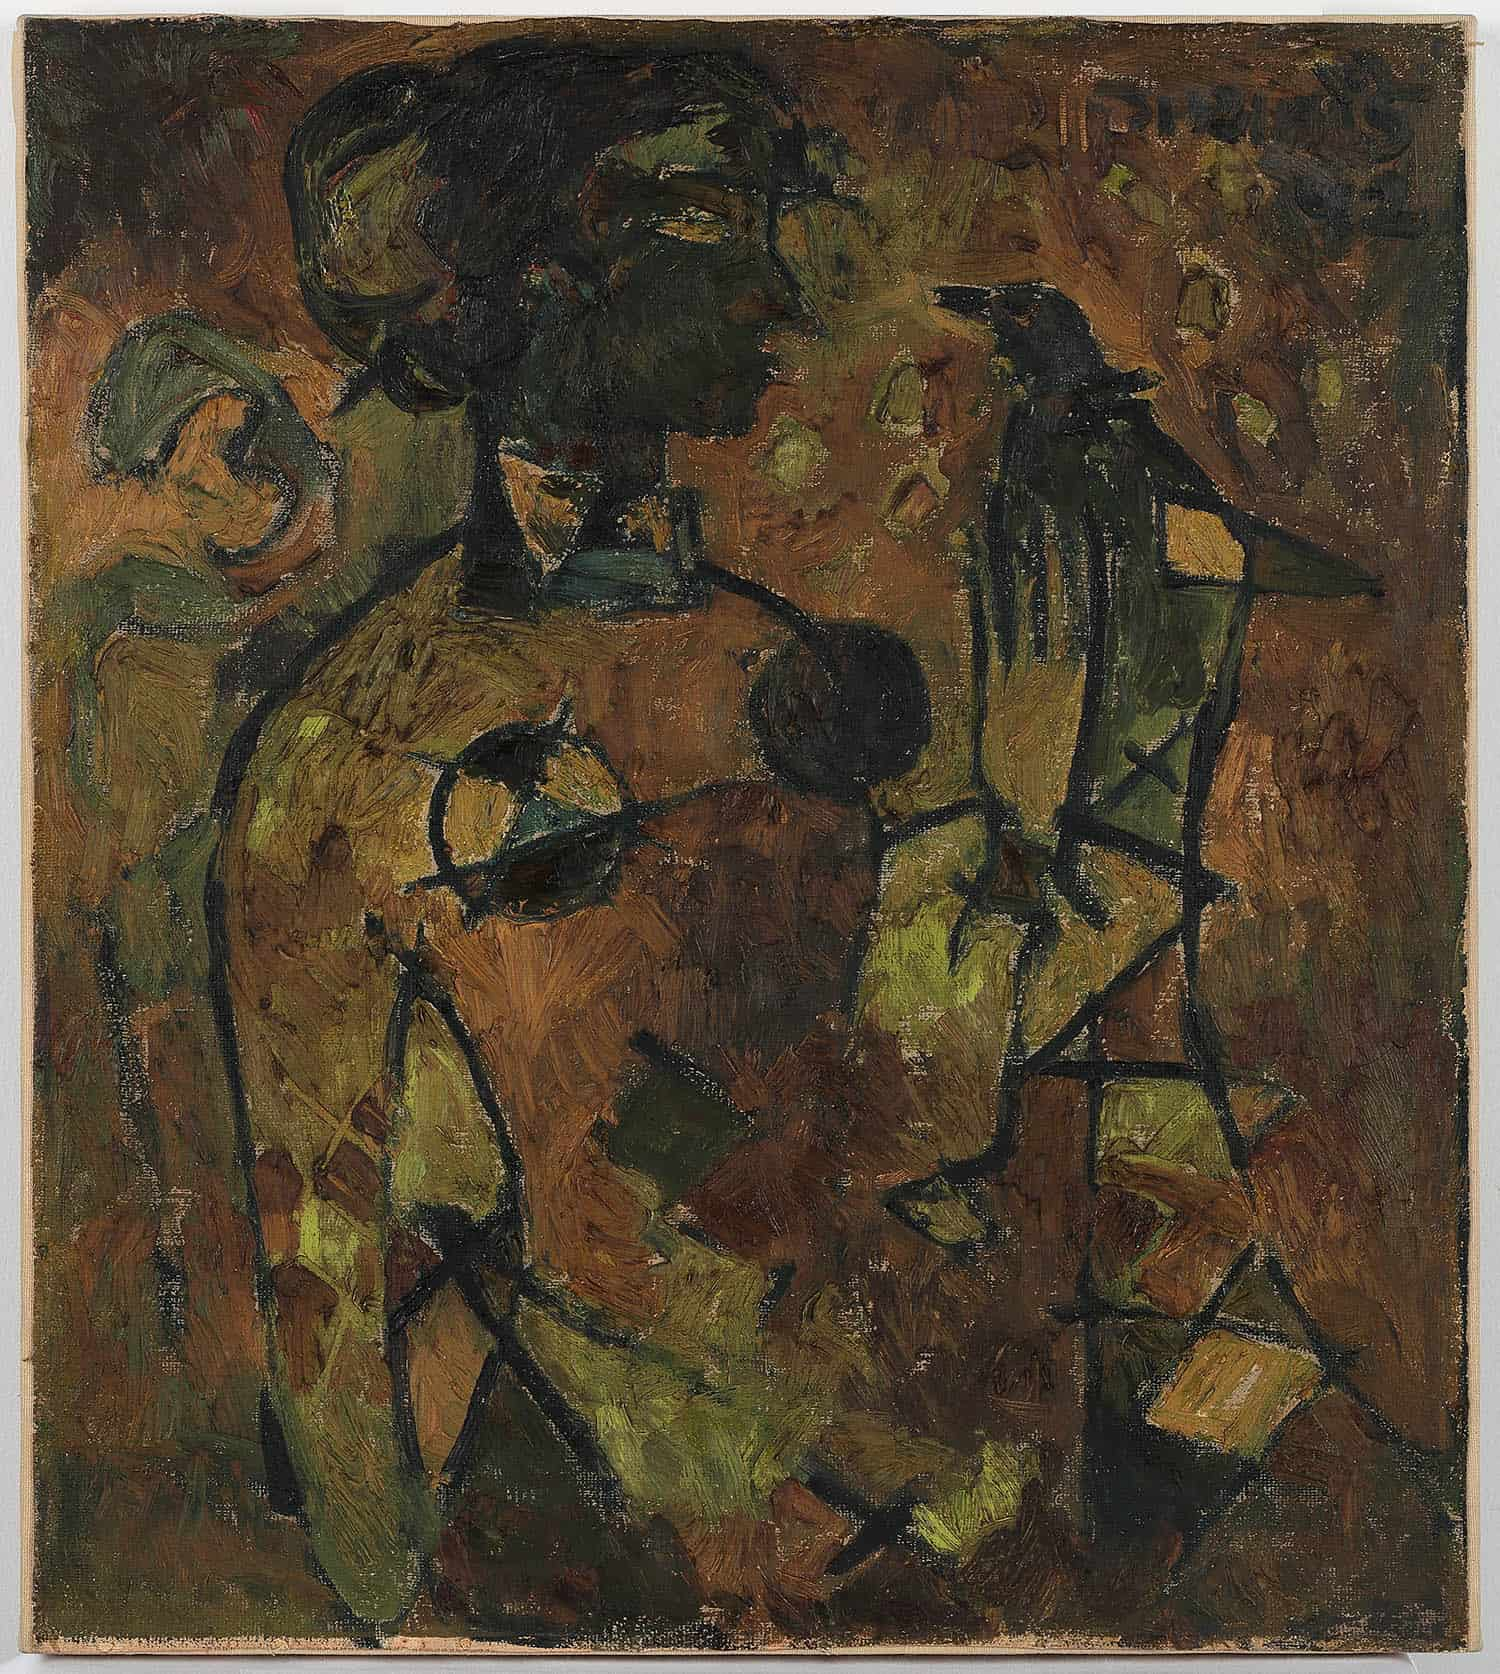 Lot 14 -V S GaitondeGÇÖs rare figurative painting of Oscar winner Bhanu Athaiya, painted in 1952, sold at INR 3 crores (USD 454,545)